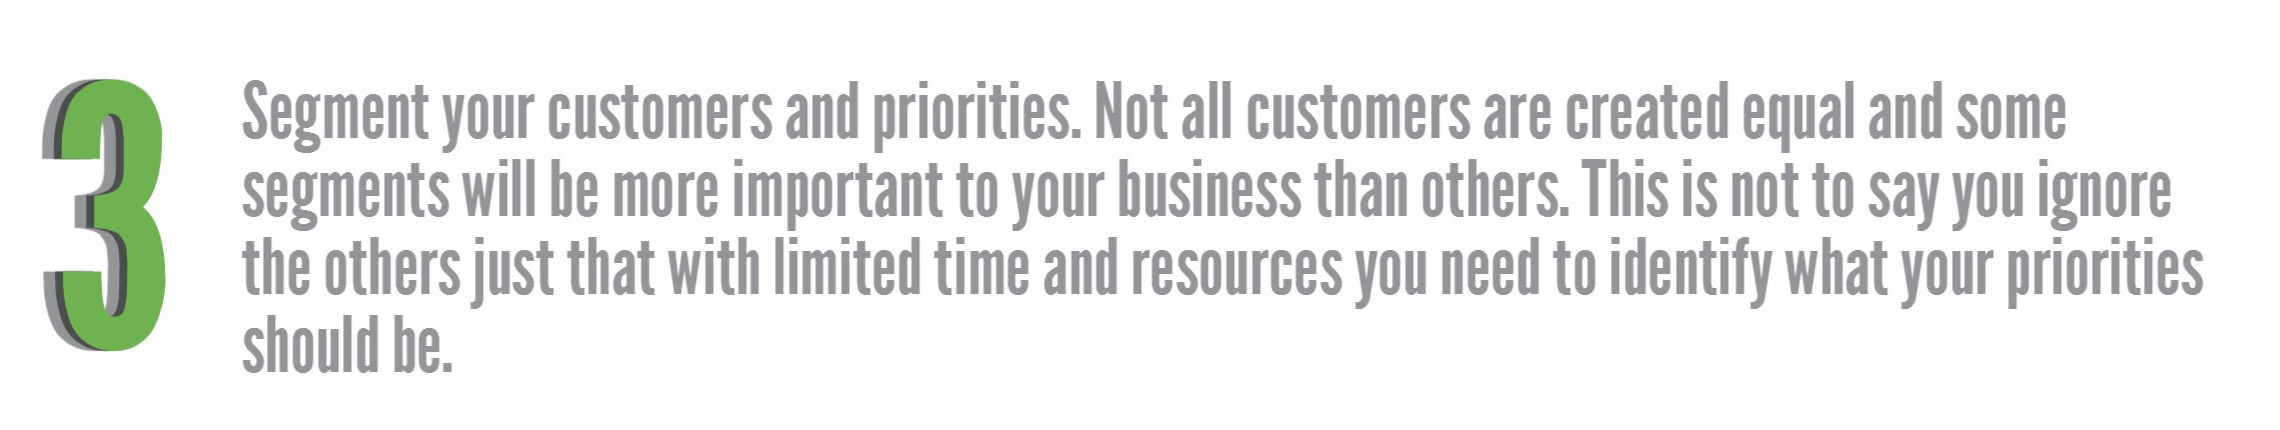 Voice of the customer action three